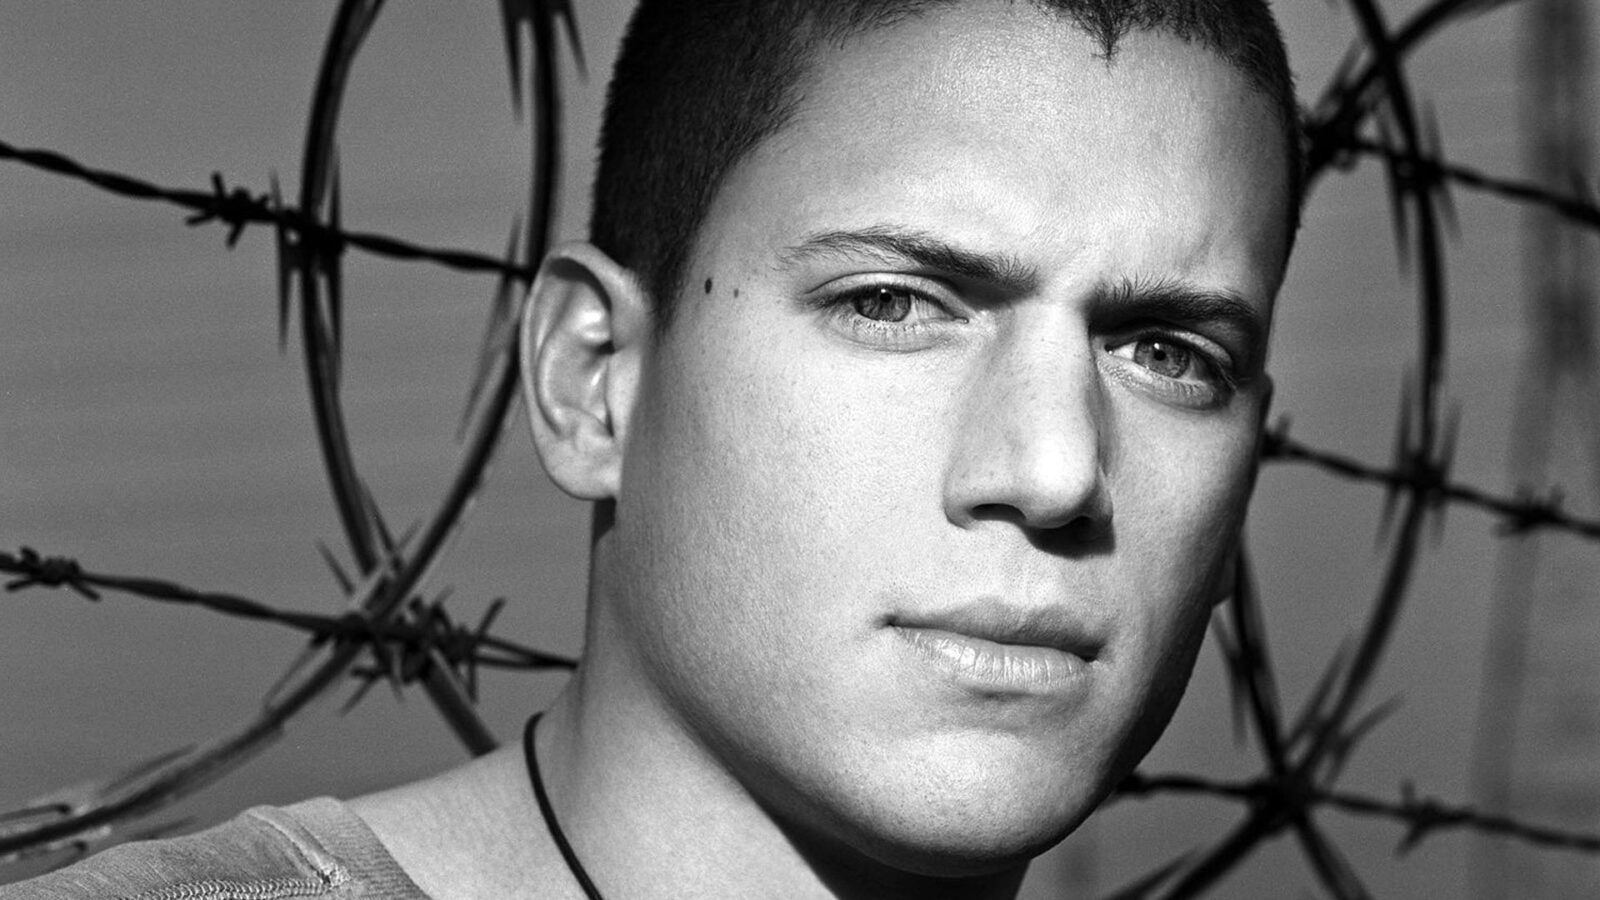 Car Wallpaper Free Download For Android Wentworth Miller Hd Wallpapers Free Download